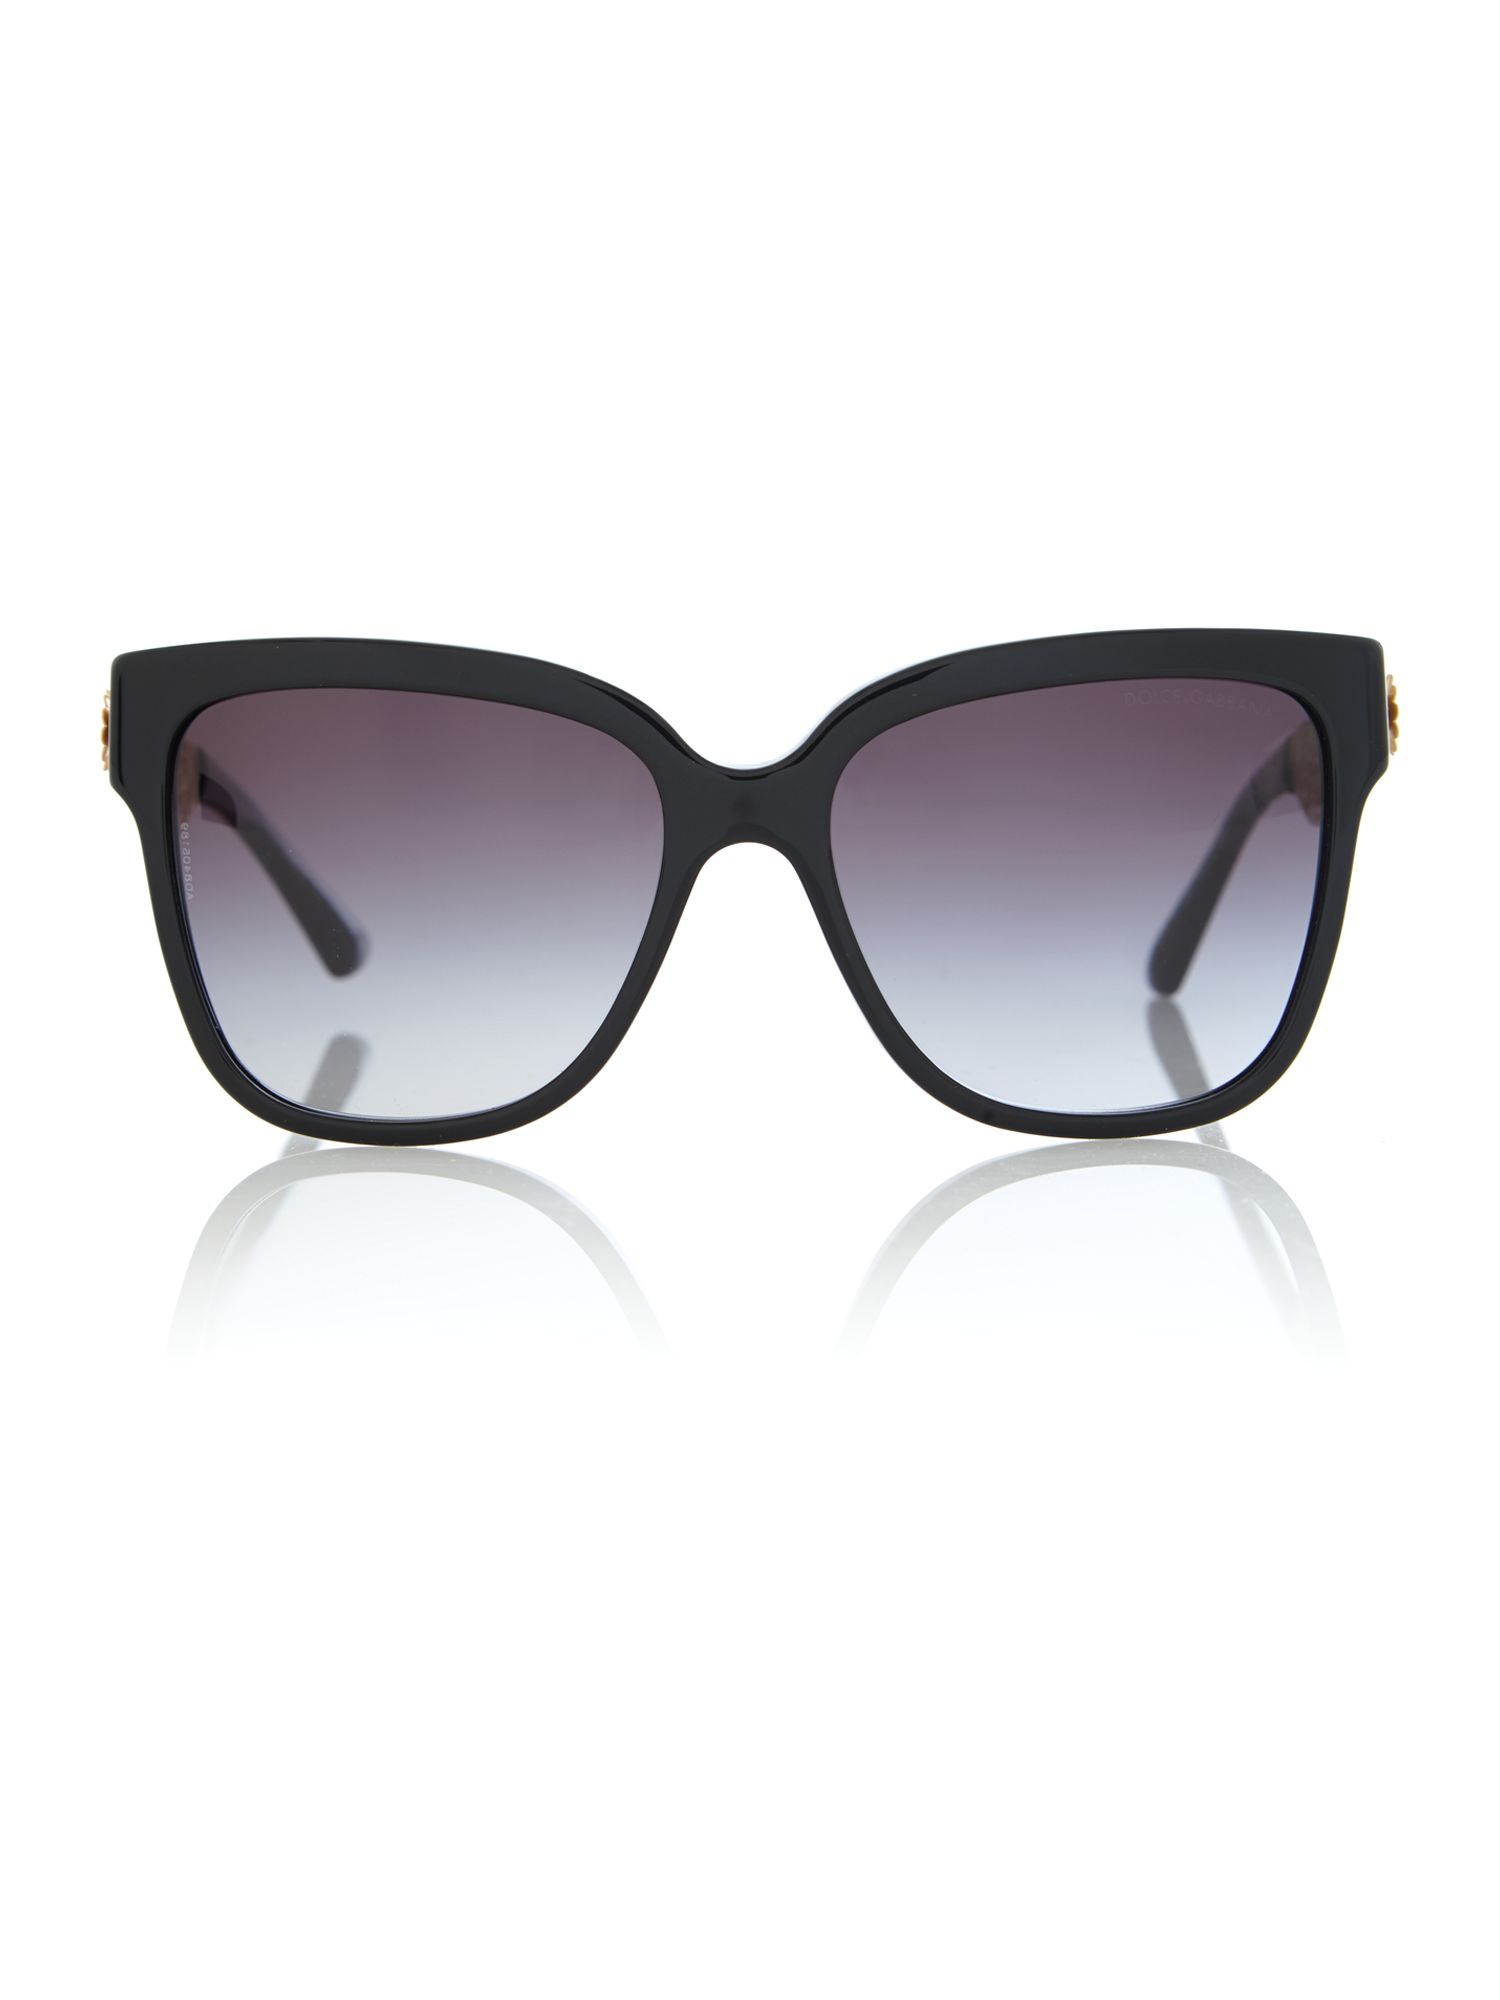 Ladies 0dg4212 sunglasses